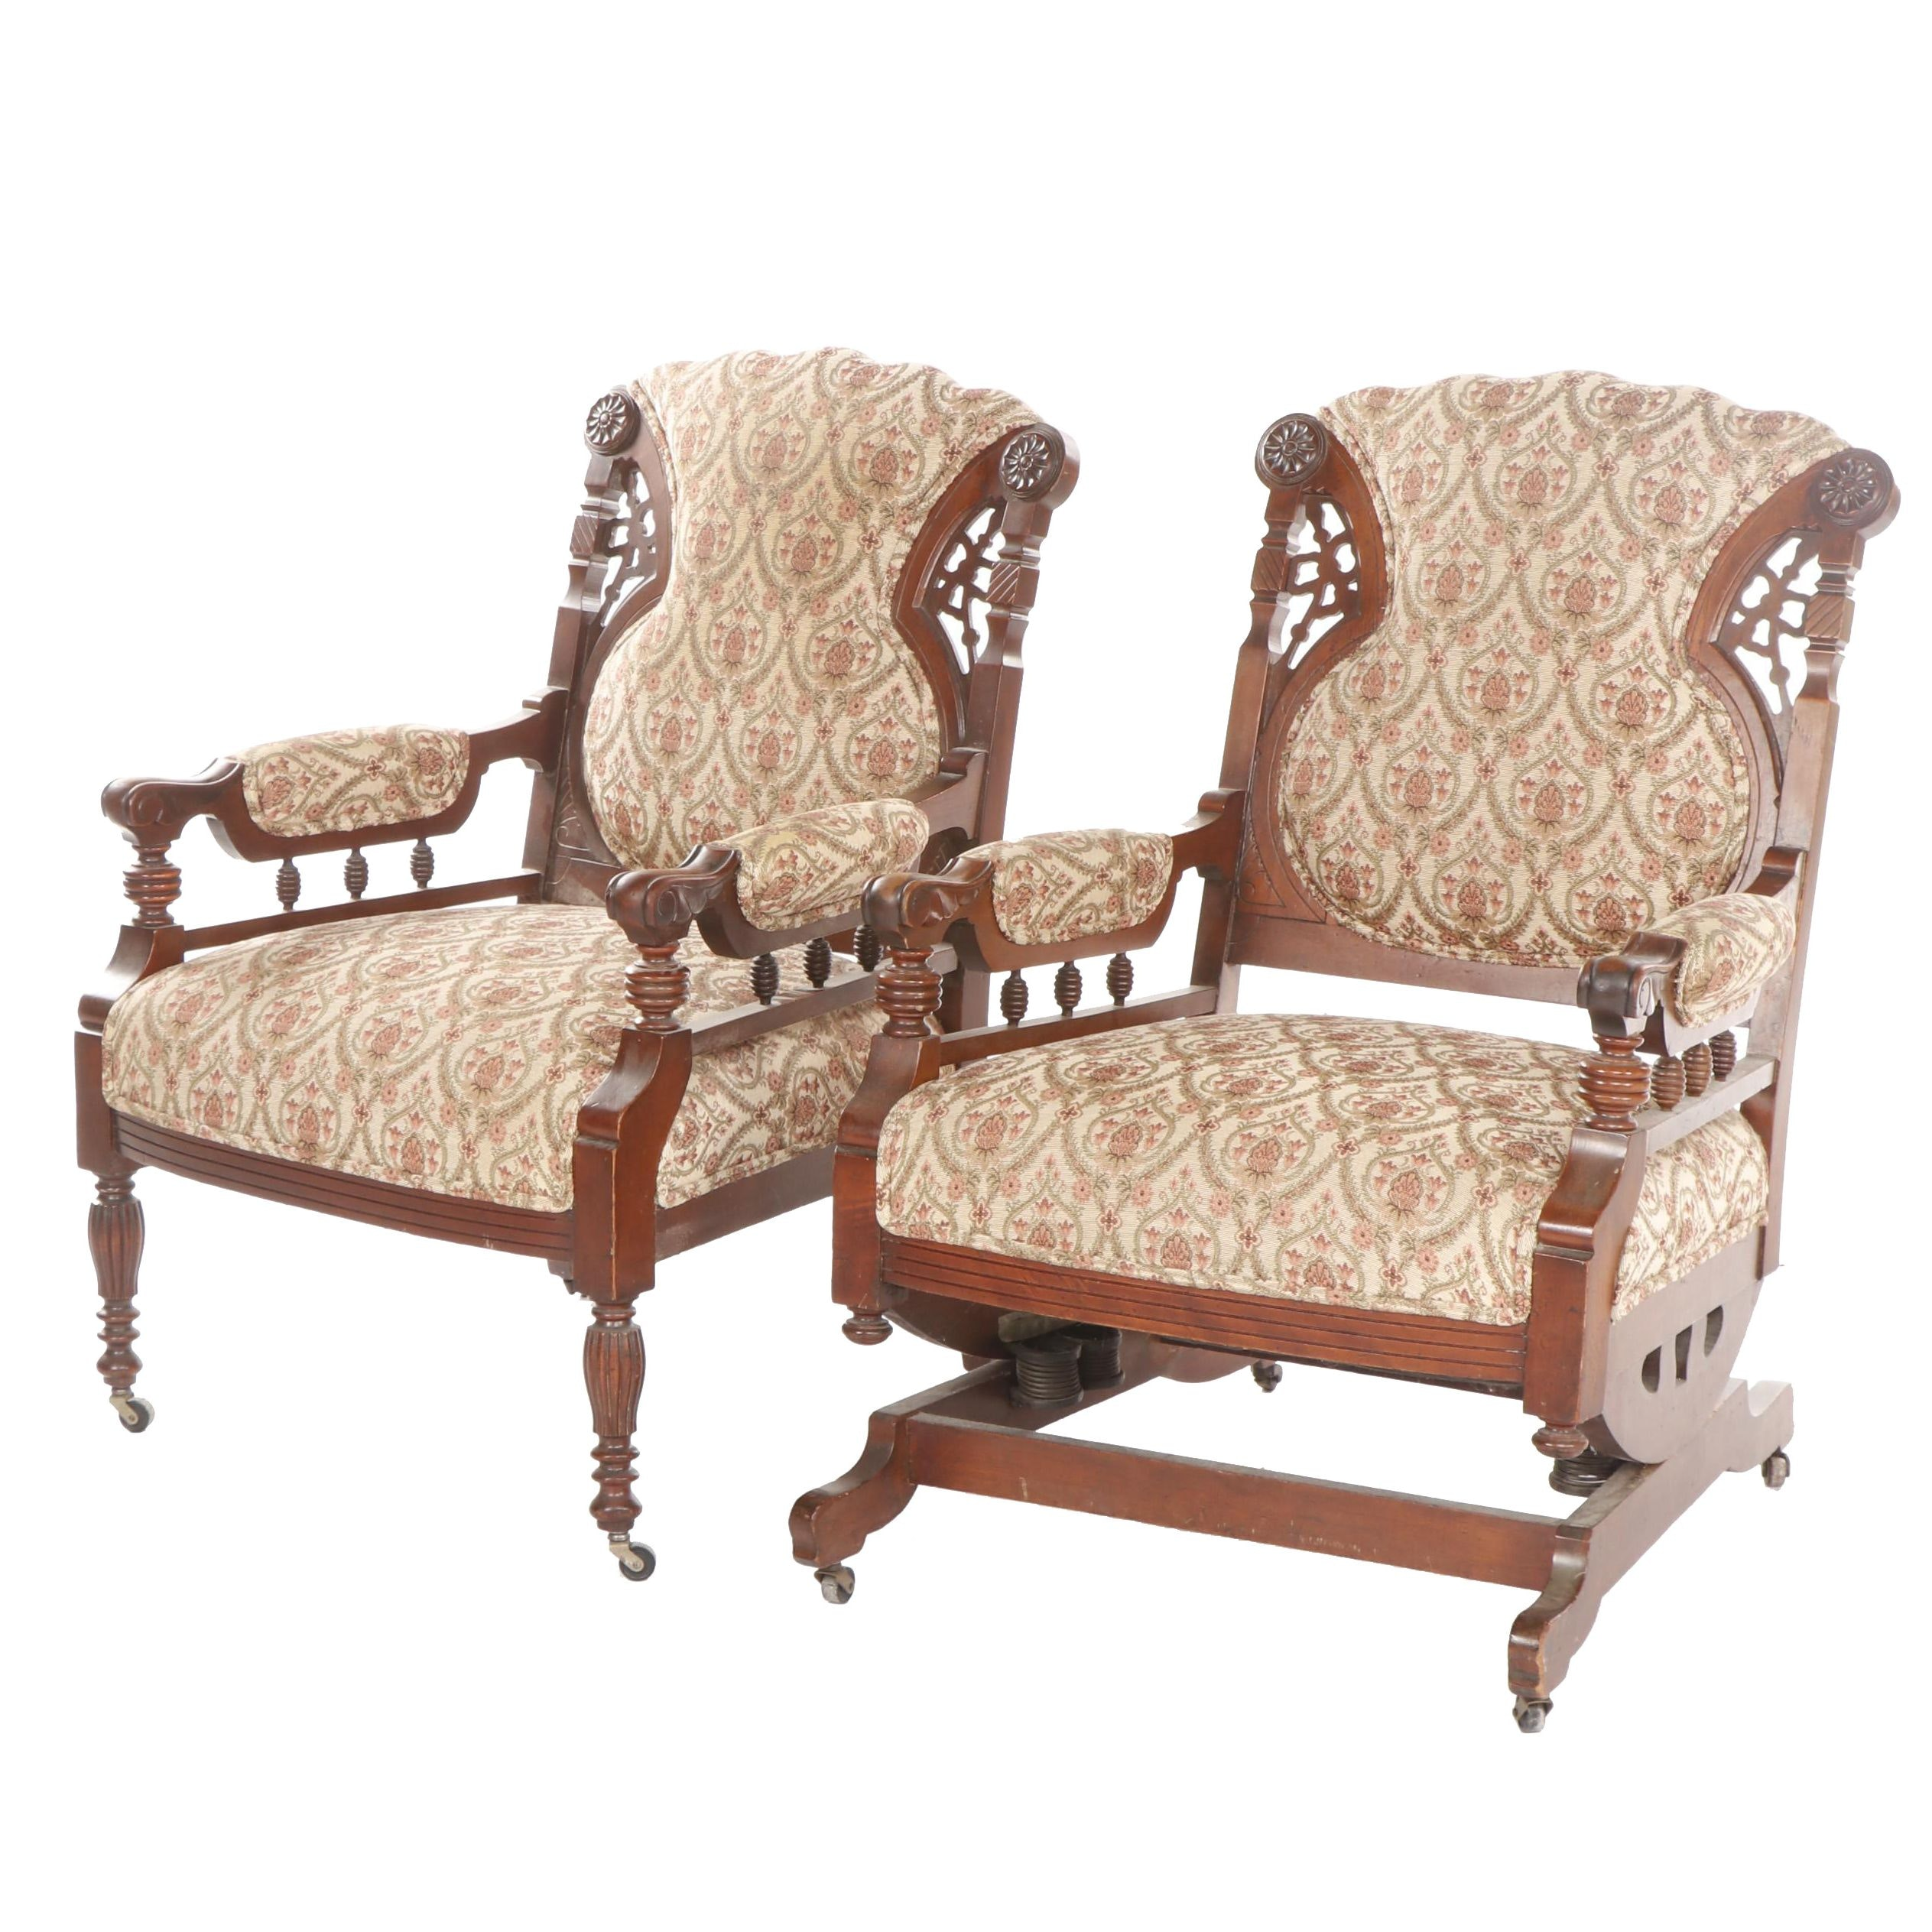 Late Victorian, Eastlake Style Carved Walnut Rocking Chair and Armchair